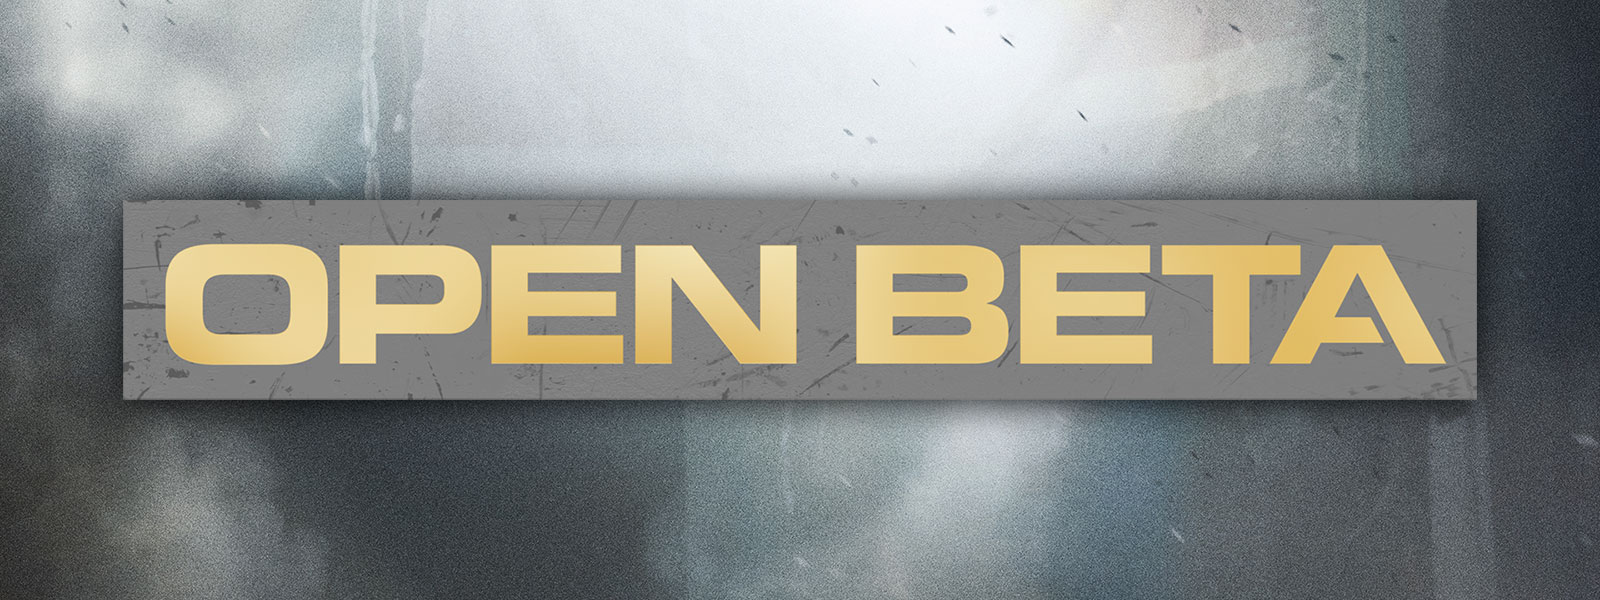 Open Beta logo with gray background